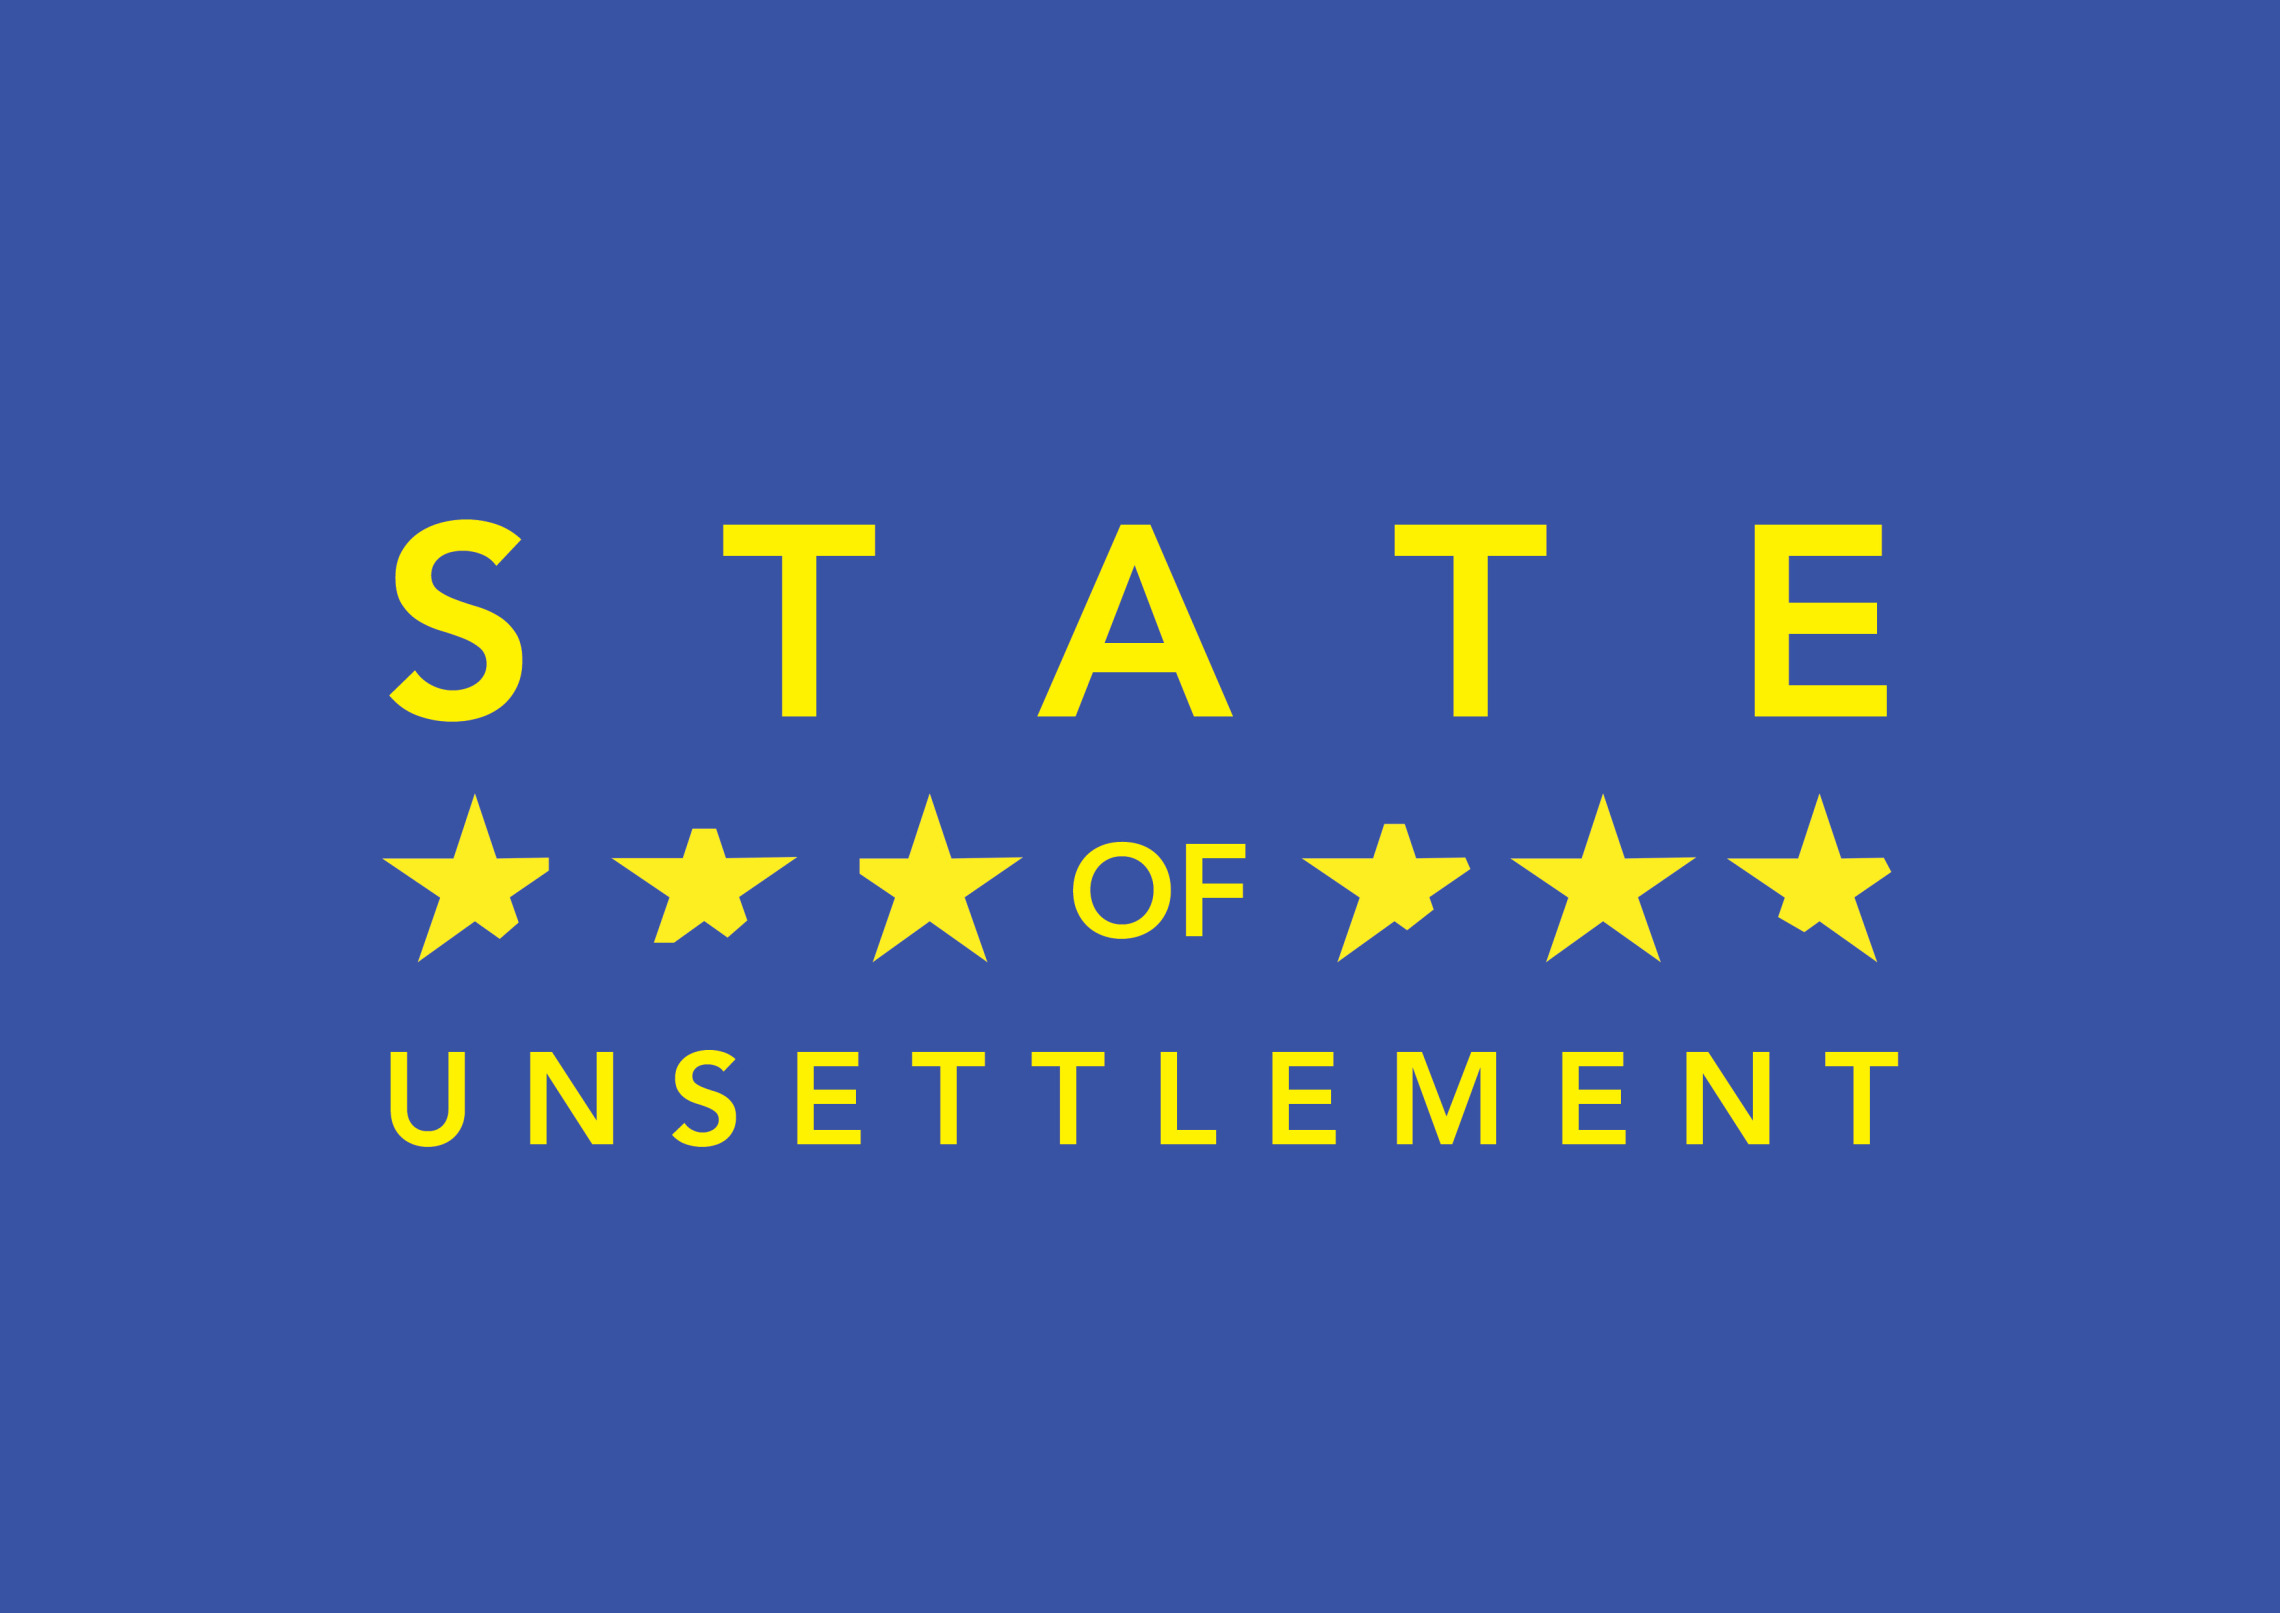 state-of-unsettlement.jpg